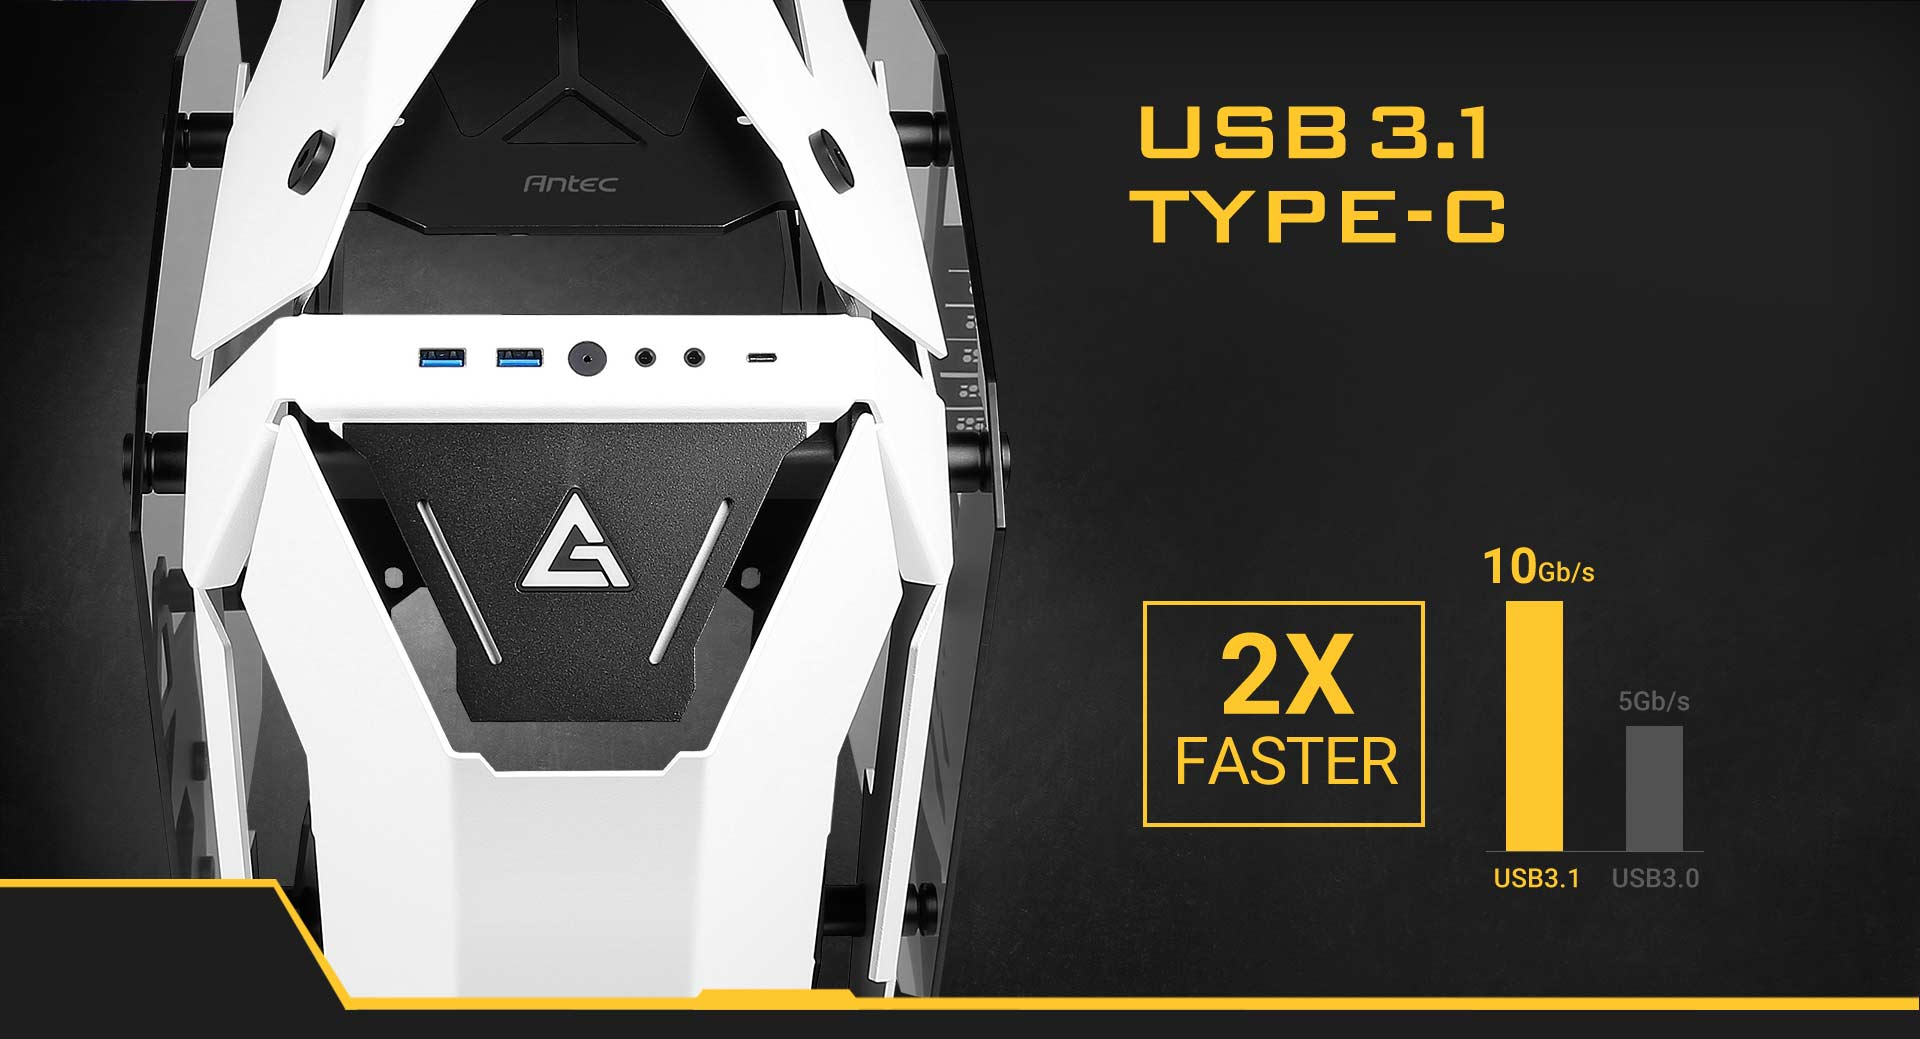 Antec Torque Closeup Facing Forward. There is text that reads: USB 3.1 TYPE-C and a Graph That Shows USB 3.1 is 2 Times Faster than USB 3.0